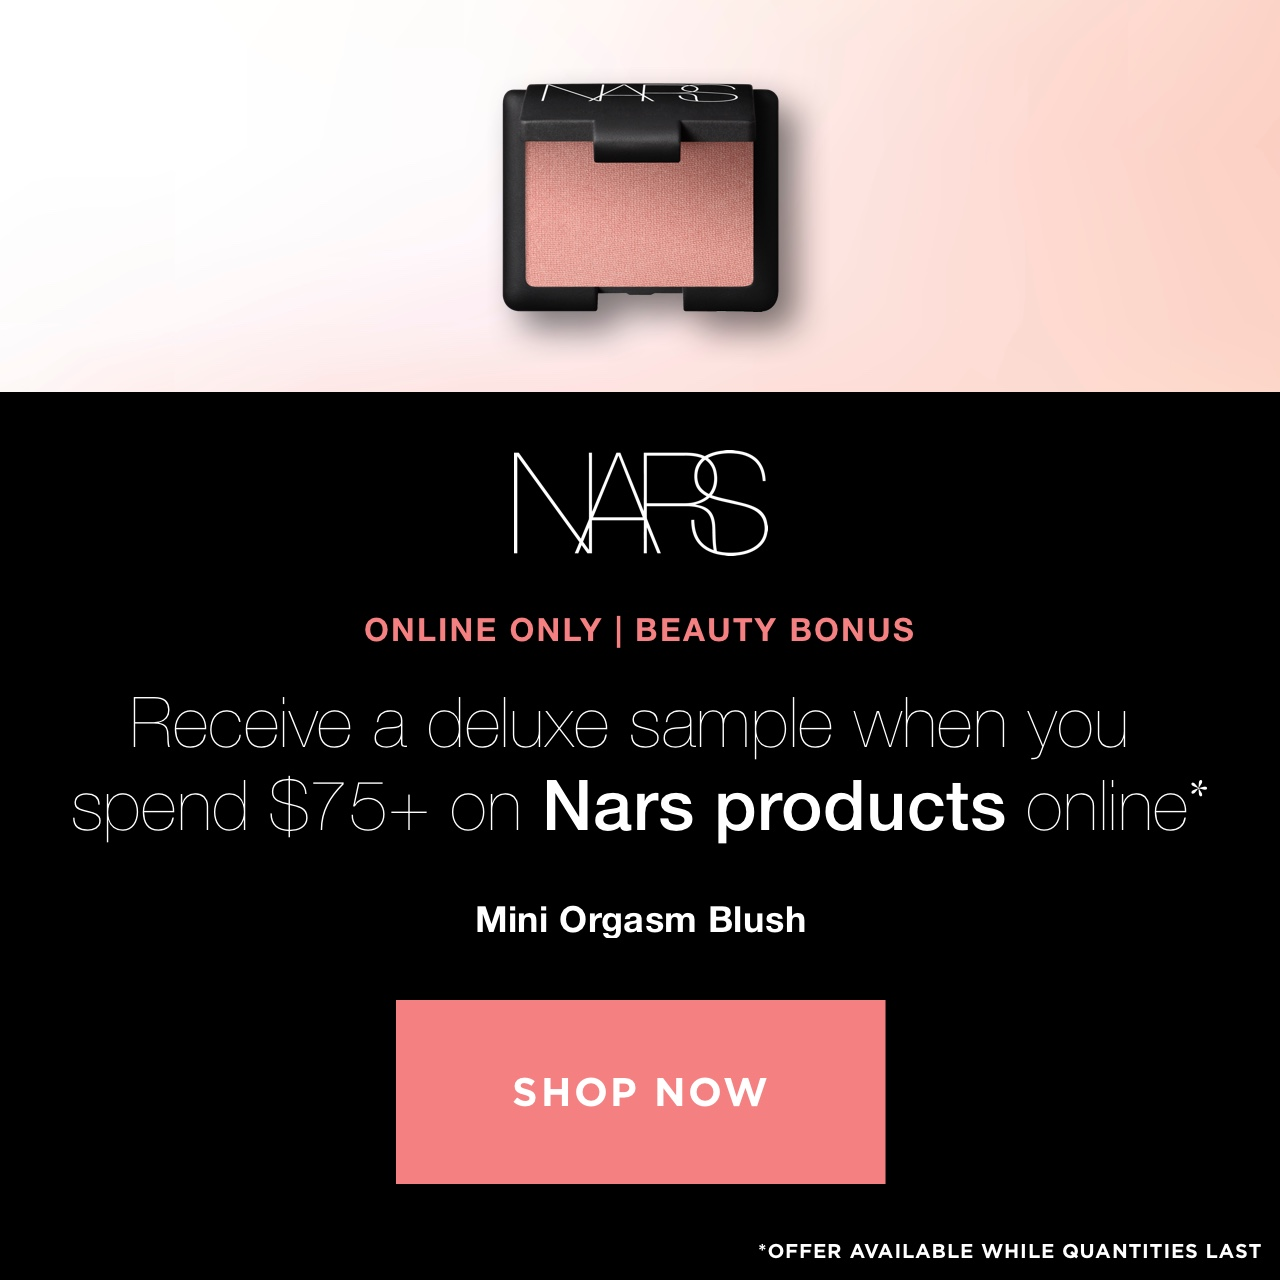 Receive a deluxe sample when you spend $75+ on Nars products online. Shop now